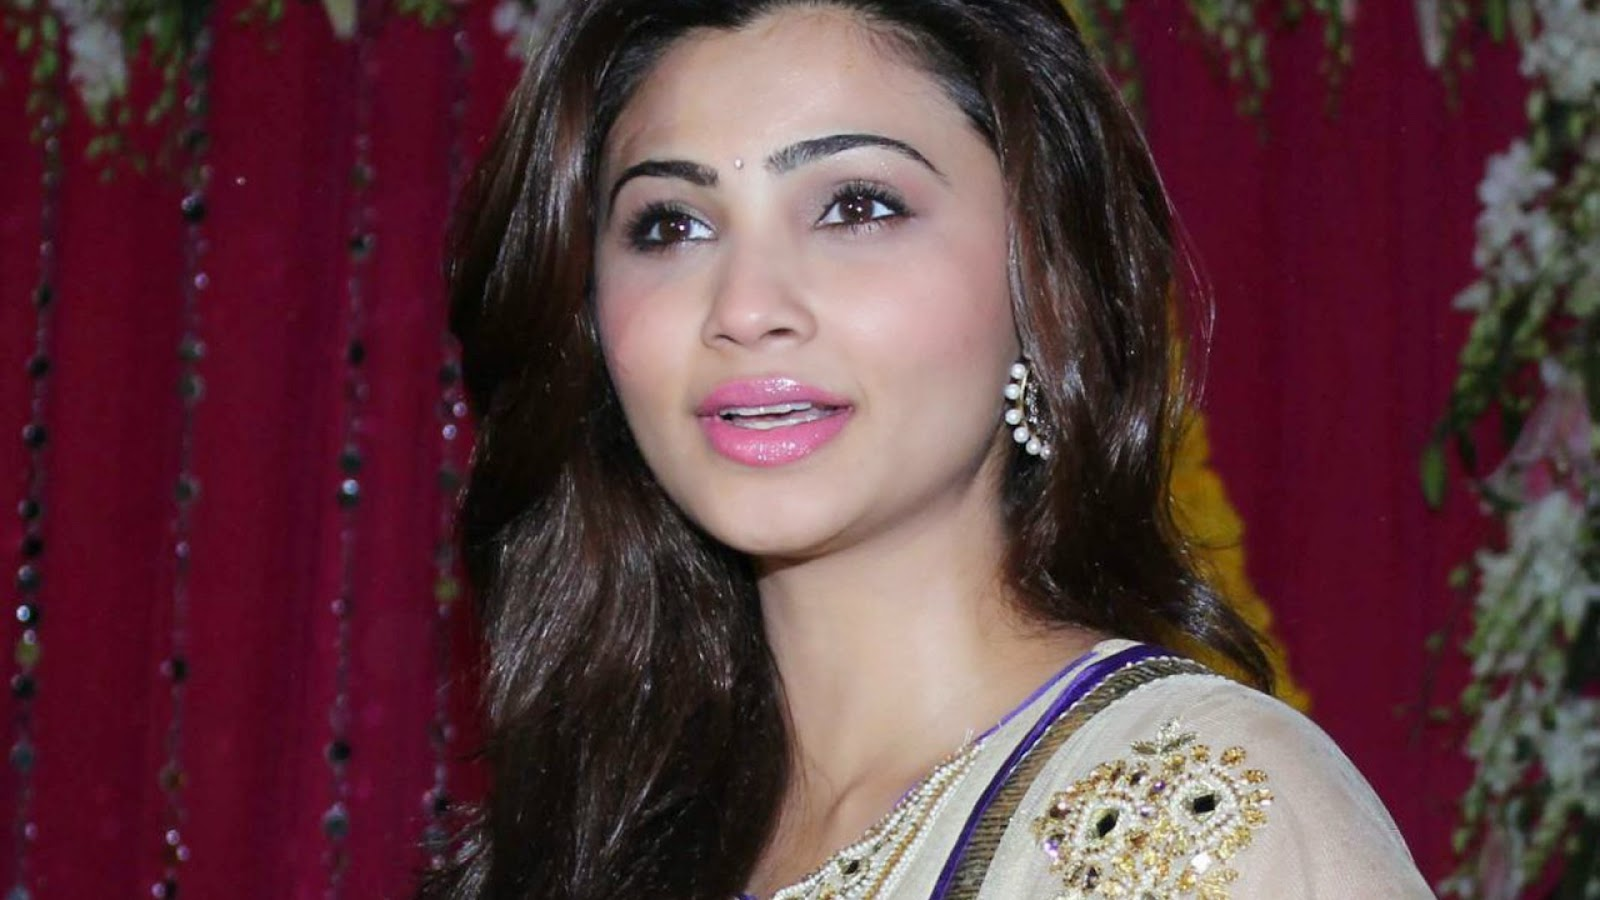 Daisy Shah Hd Wallpaper: Global Pictures Gallery: Daisy Shah Full HD Wallpapers